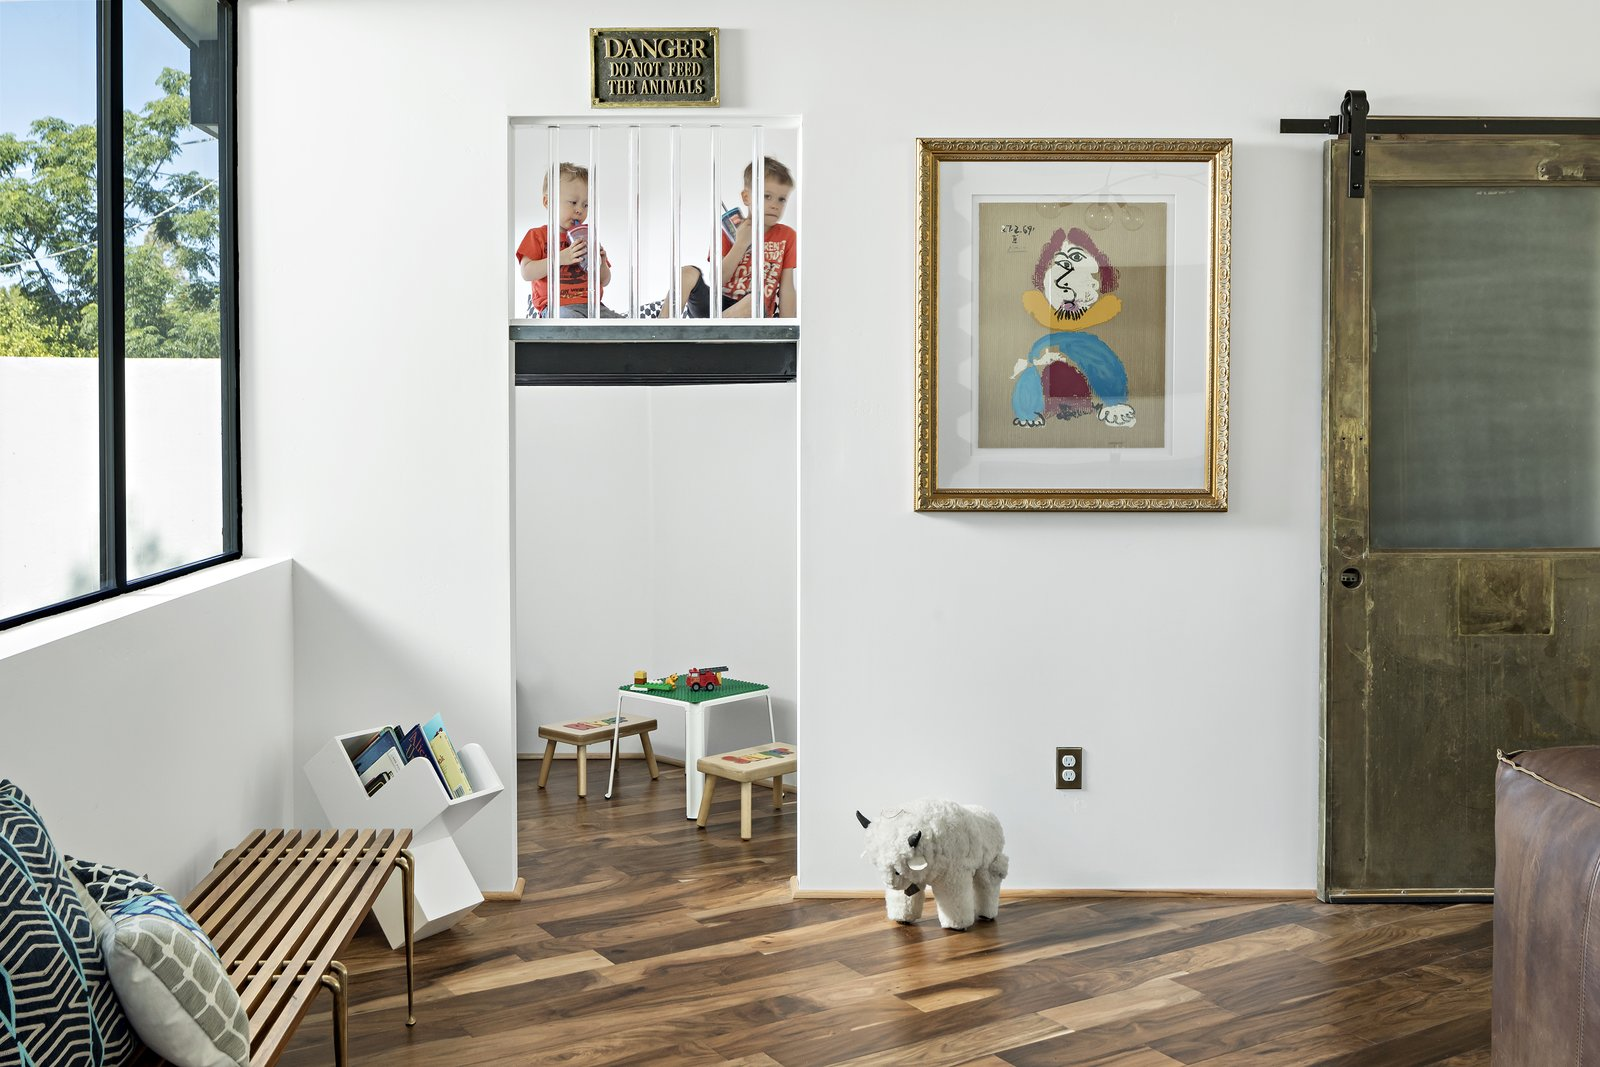 Kid's nook features a hidden brass ladder up to a lucite enclosed play space. Reclaimed brass door hides toy storage Tagged: Kids Room, Playroom, Bench, Medium Hardwood Floor, Toddler Age, Pre-Teen Age, and Neutral Gender.  Modern Manor by The Ranch Mine